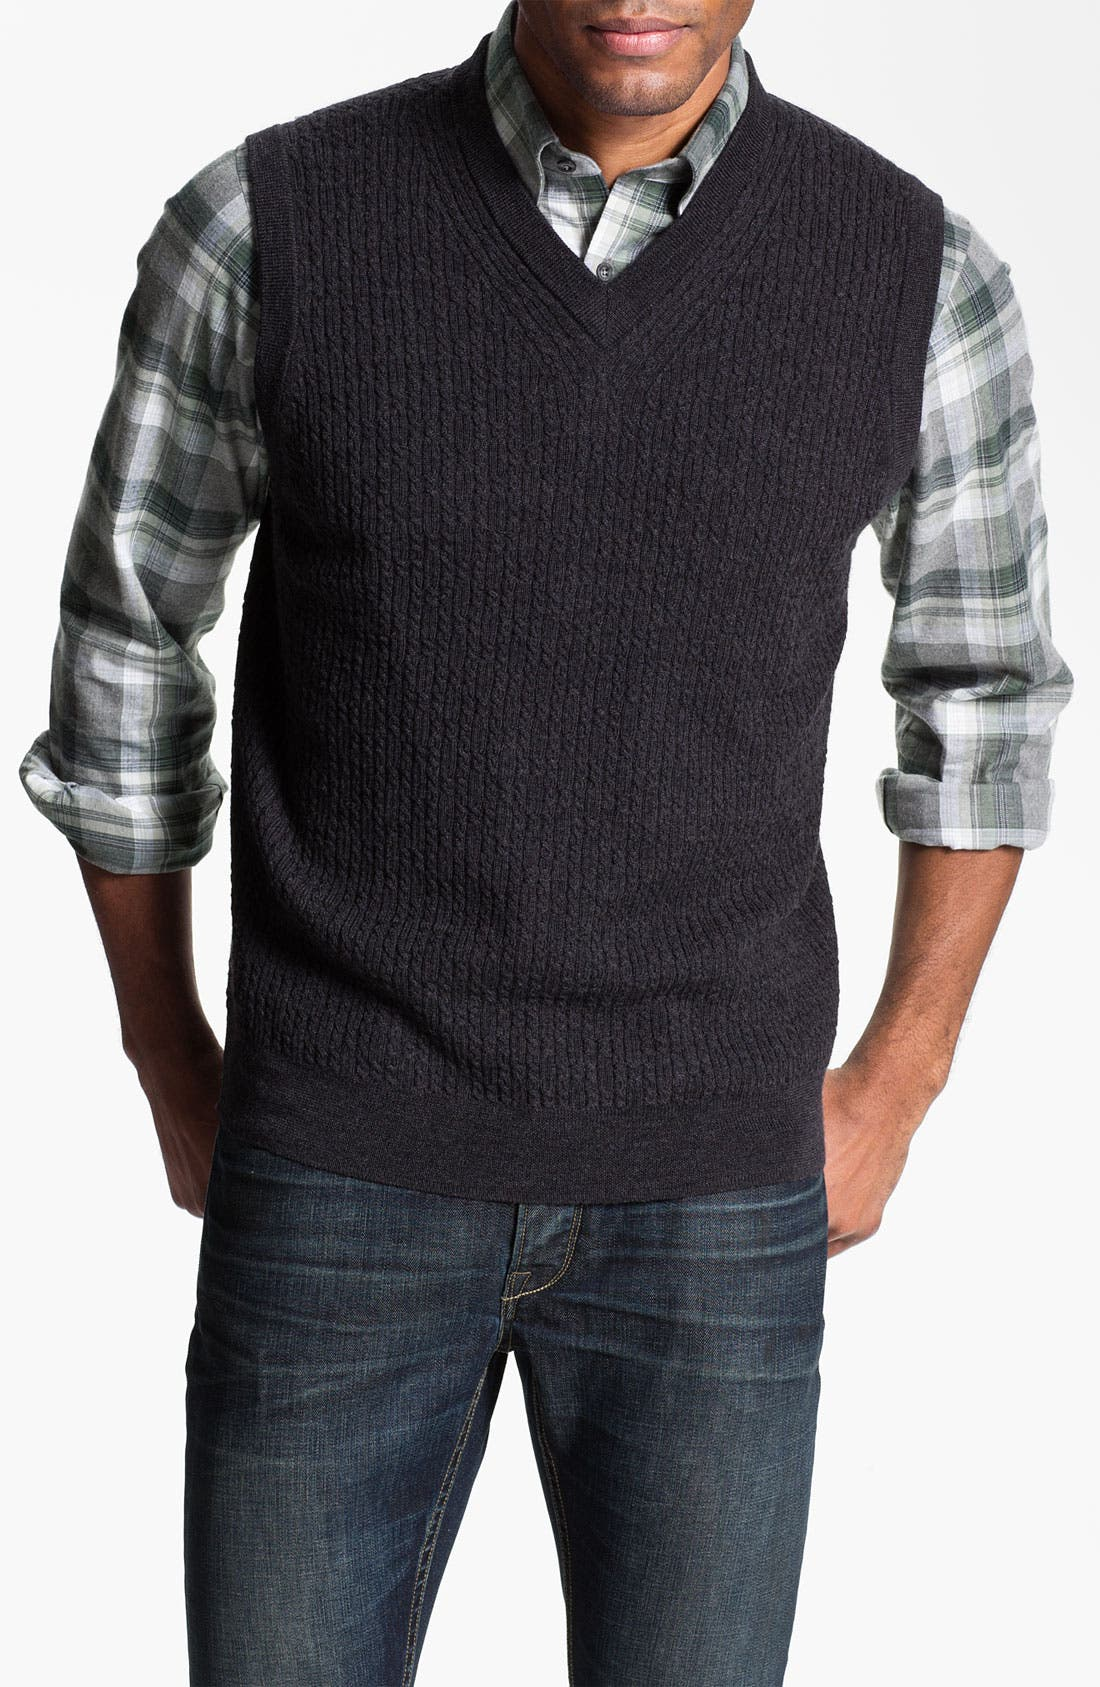 Cable Knit Merino Wool Sweater Vest,                             Main thumbnail 1, color,                             001